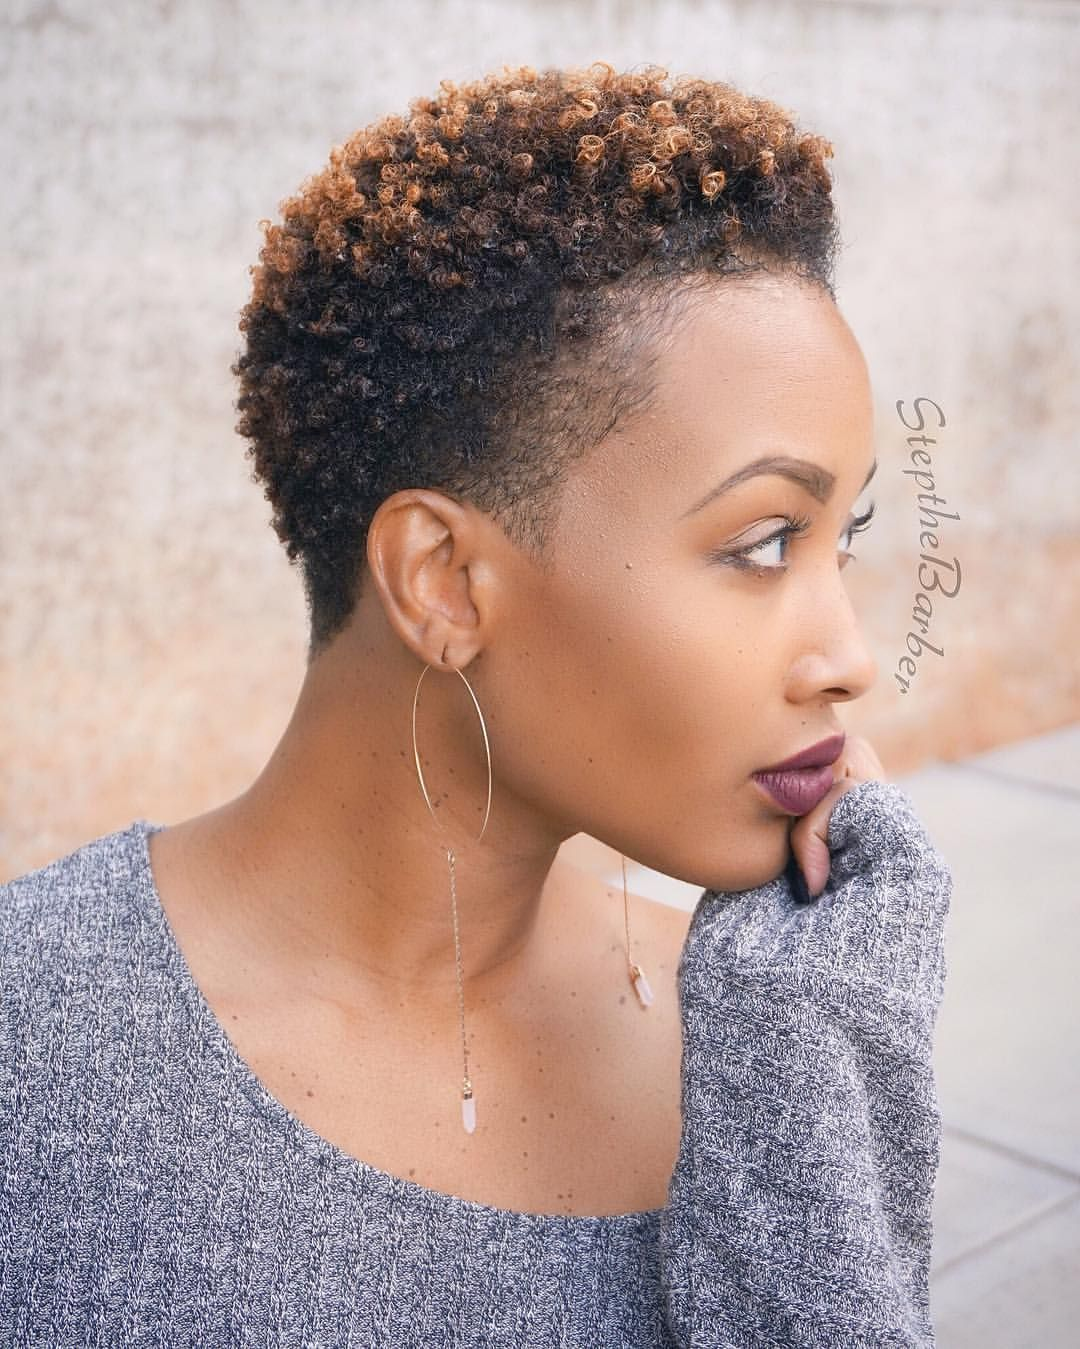 Owner Of Plushmidtown 840 3rd St Nw Suite 28 Atlanta Ga 30318 Appointment Only For Pric Short Natural Hair Styles Short Natural Haircuts Natural Hair Styles